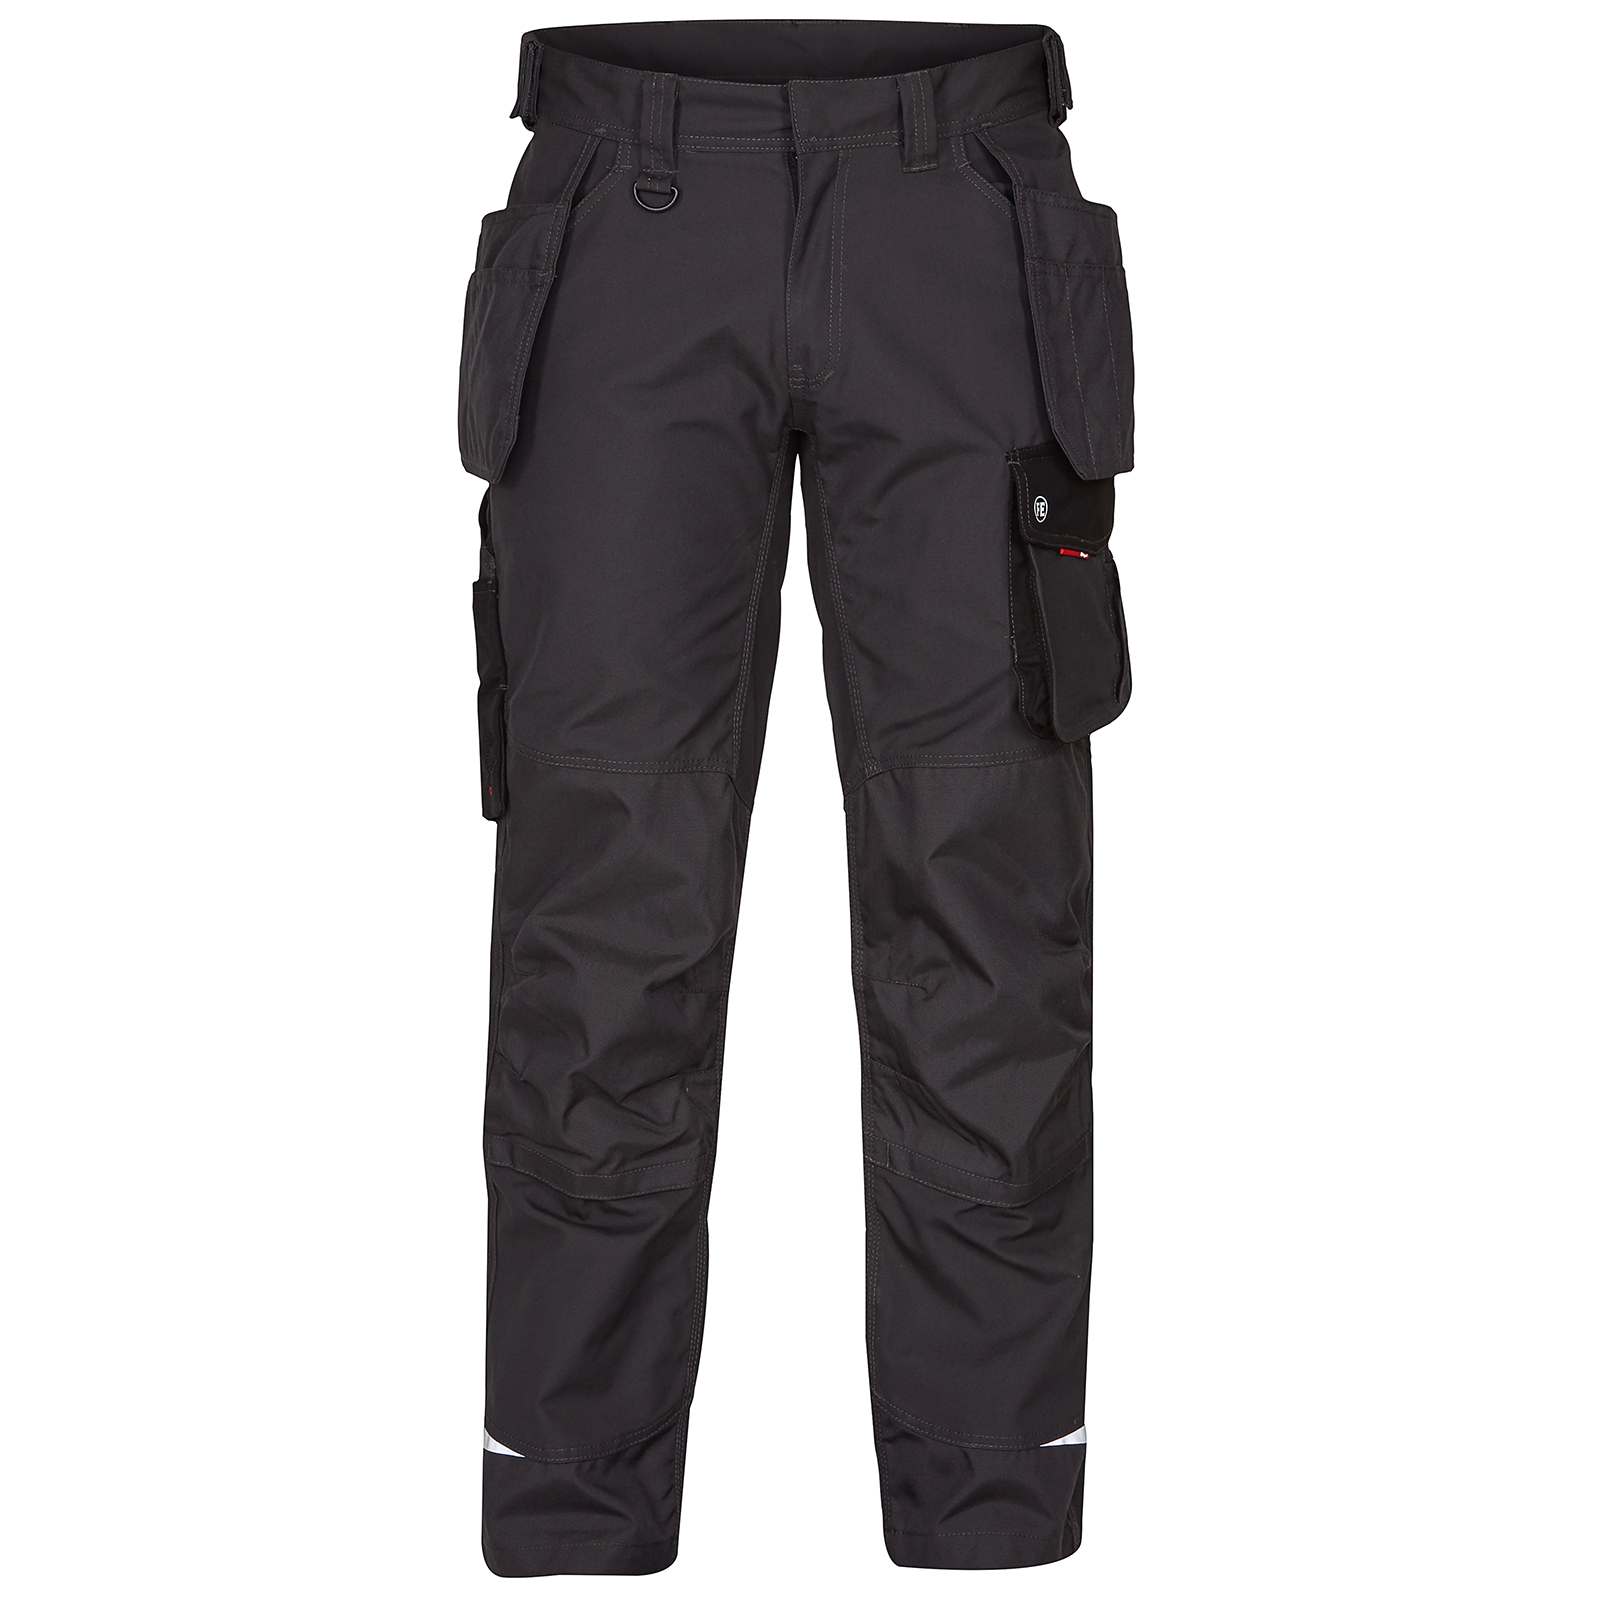 Engel Galaxy work trousers